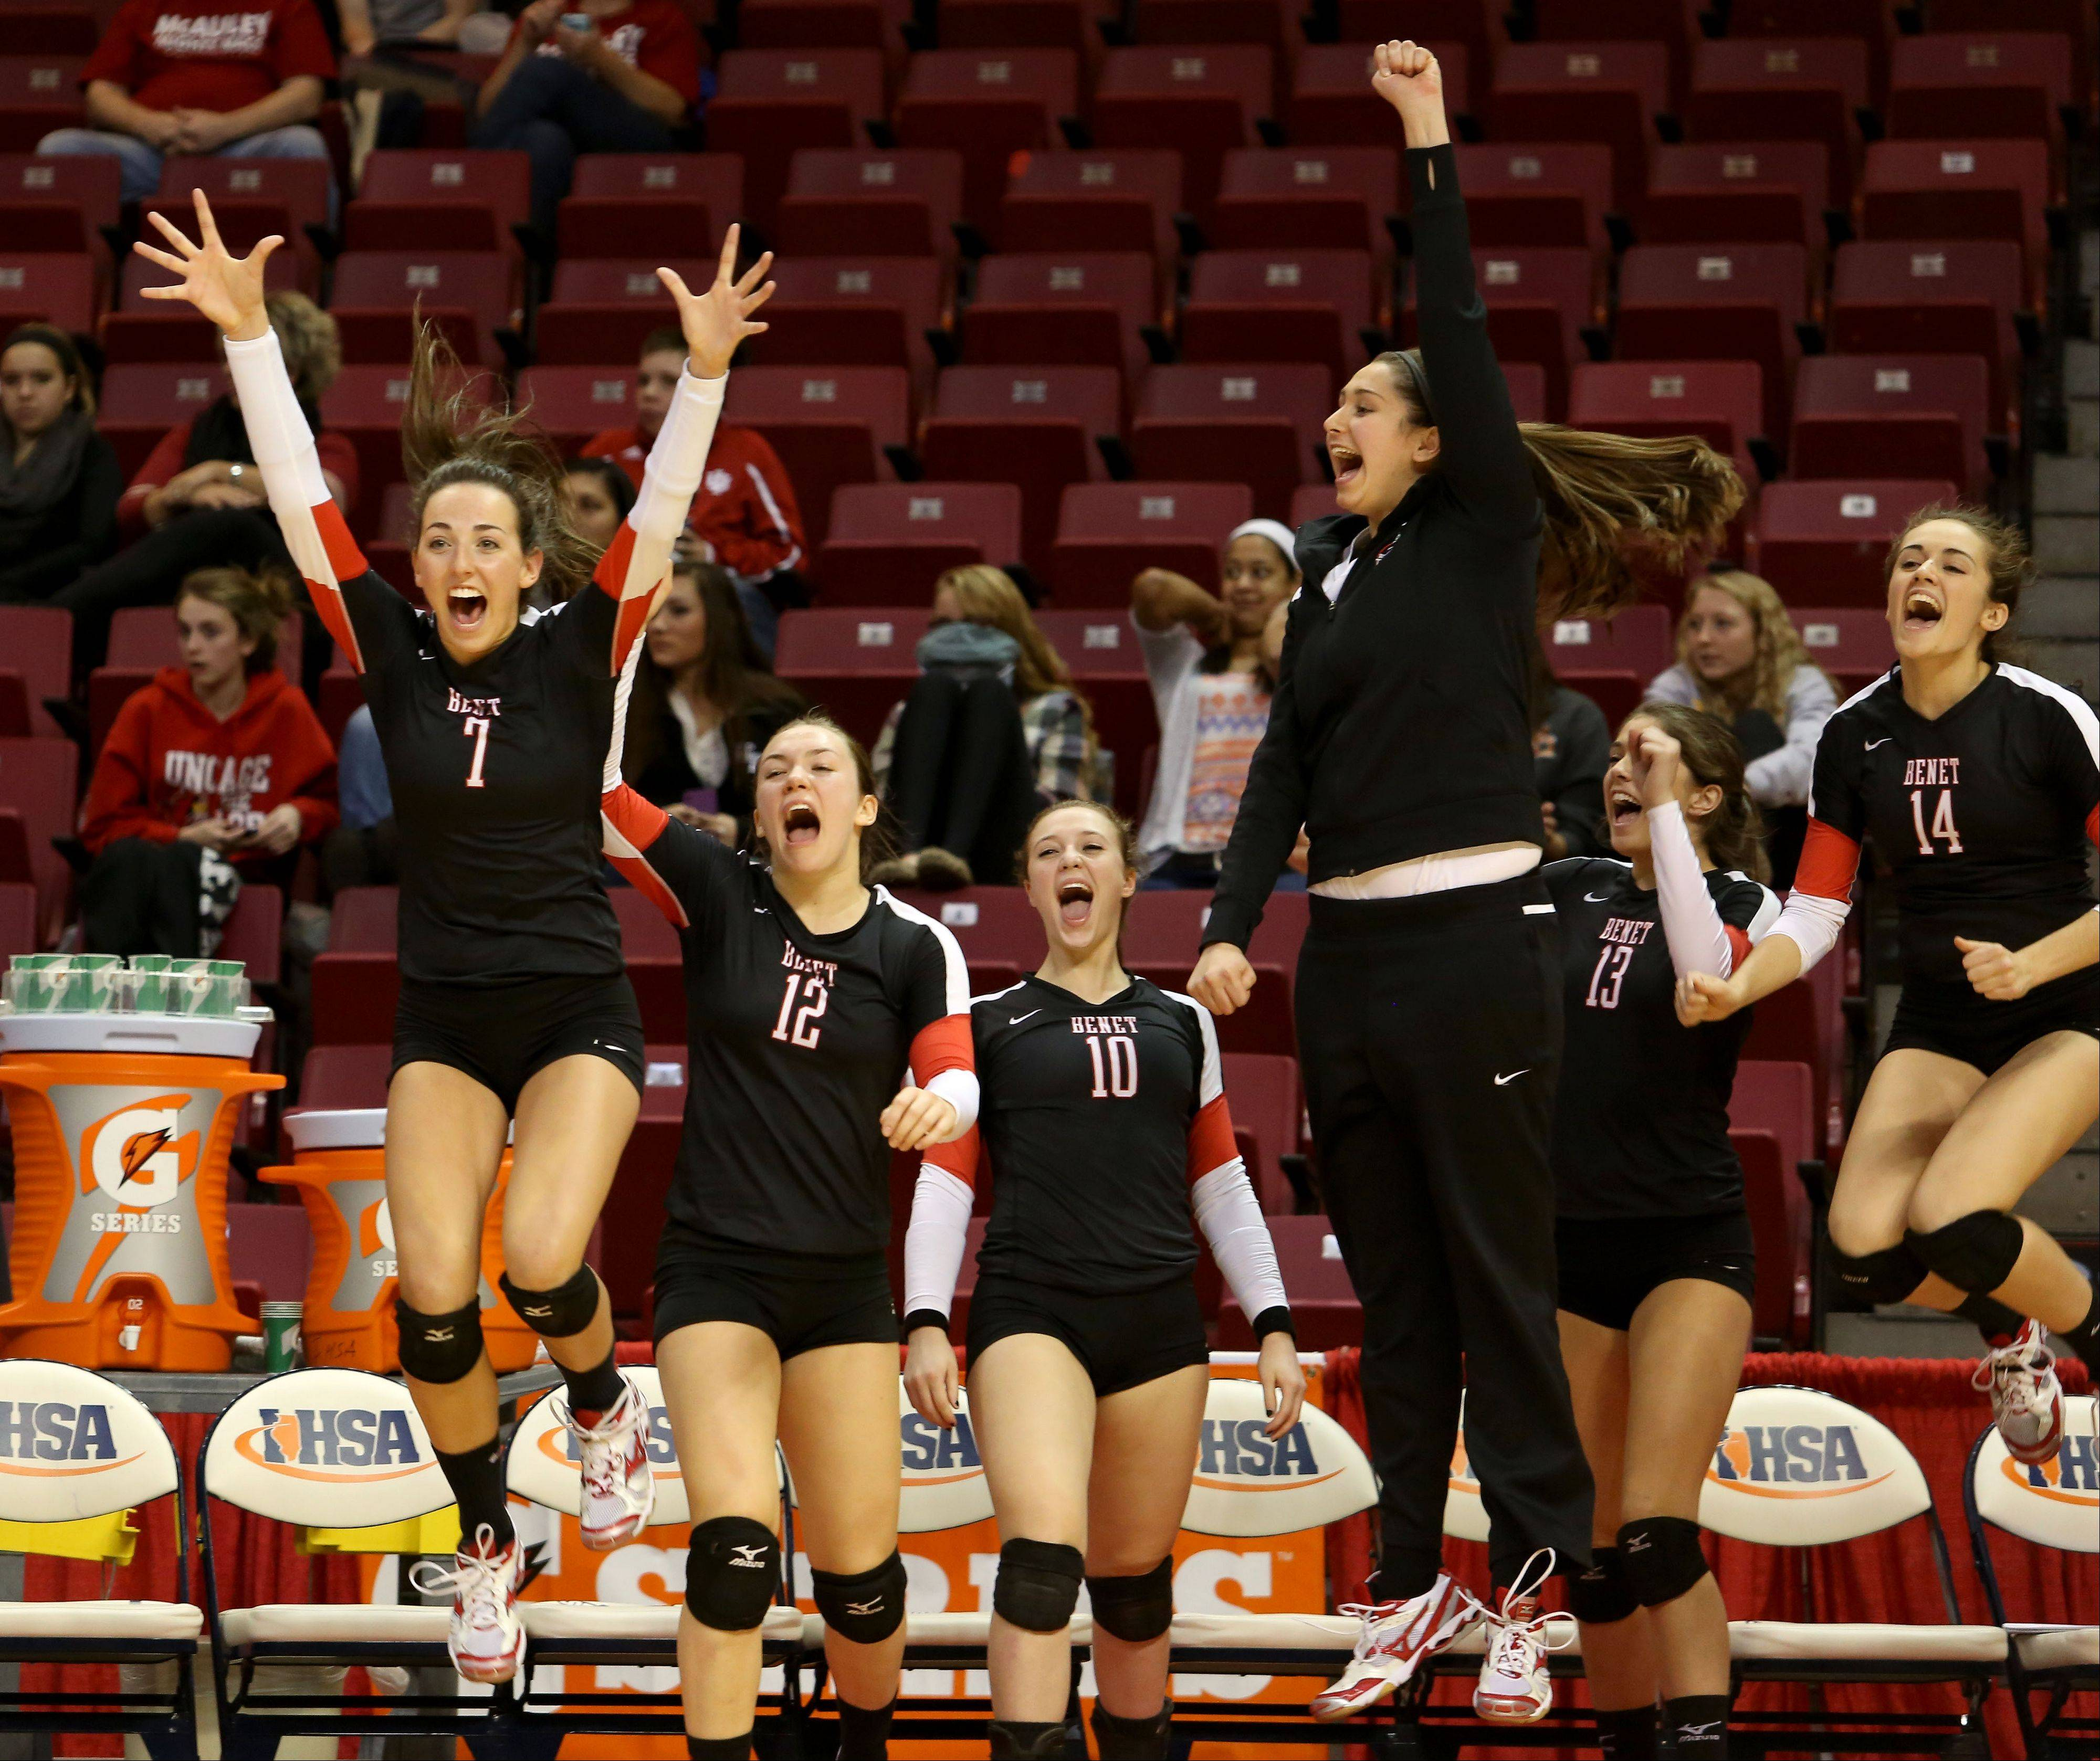 The Benet bench reacts after beating Crystal Lake South in Class 4A state girls volleyball semifinals on Friday in Normal.